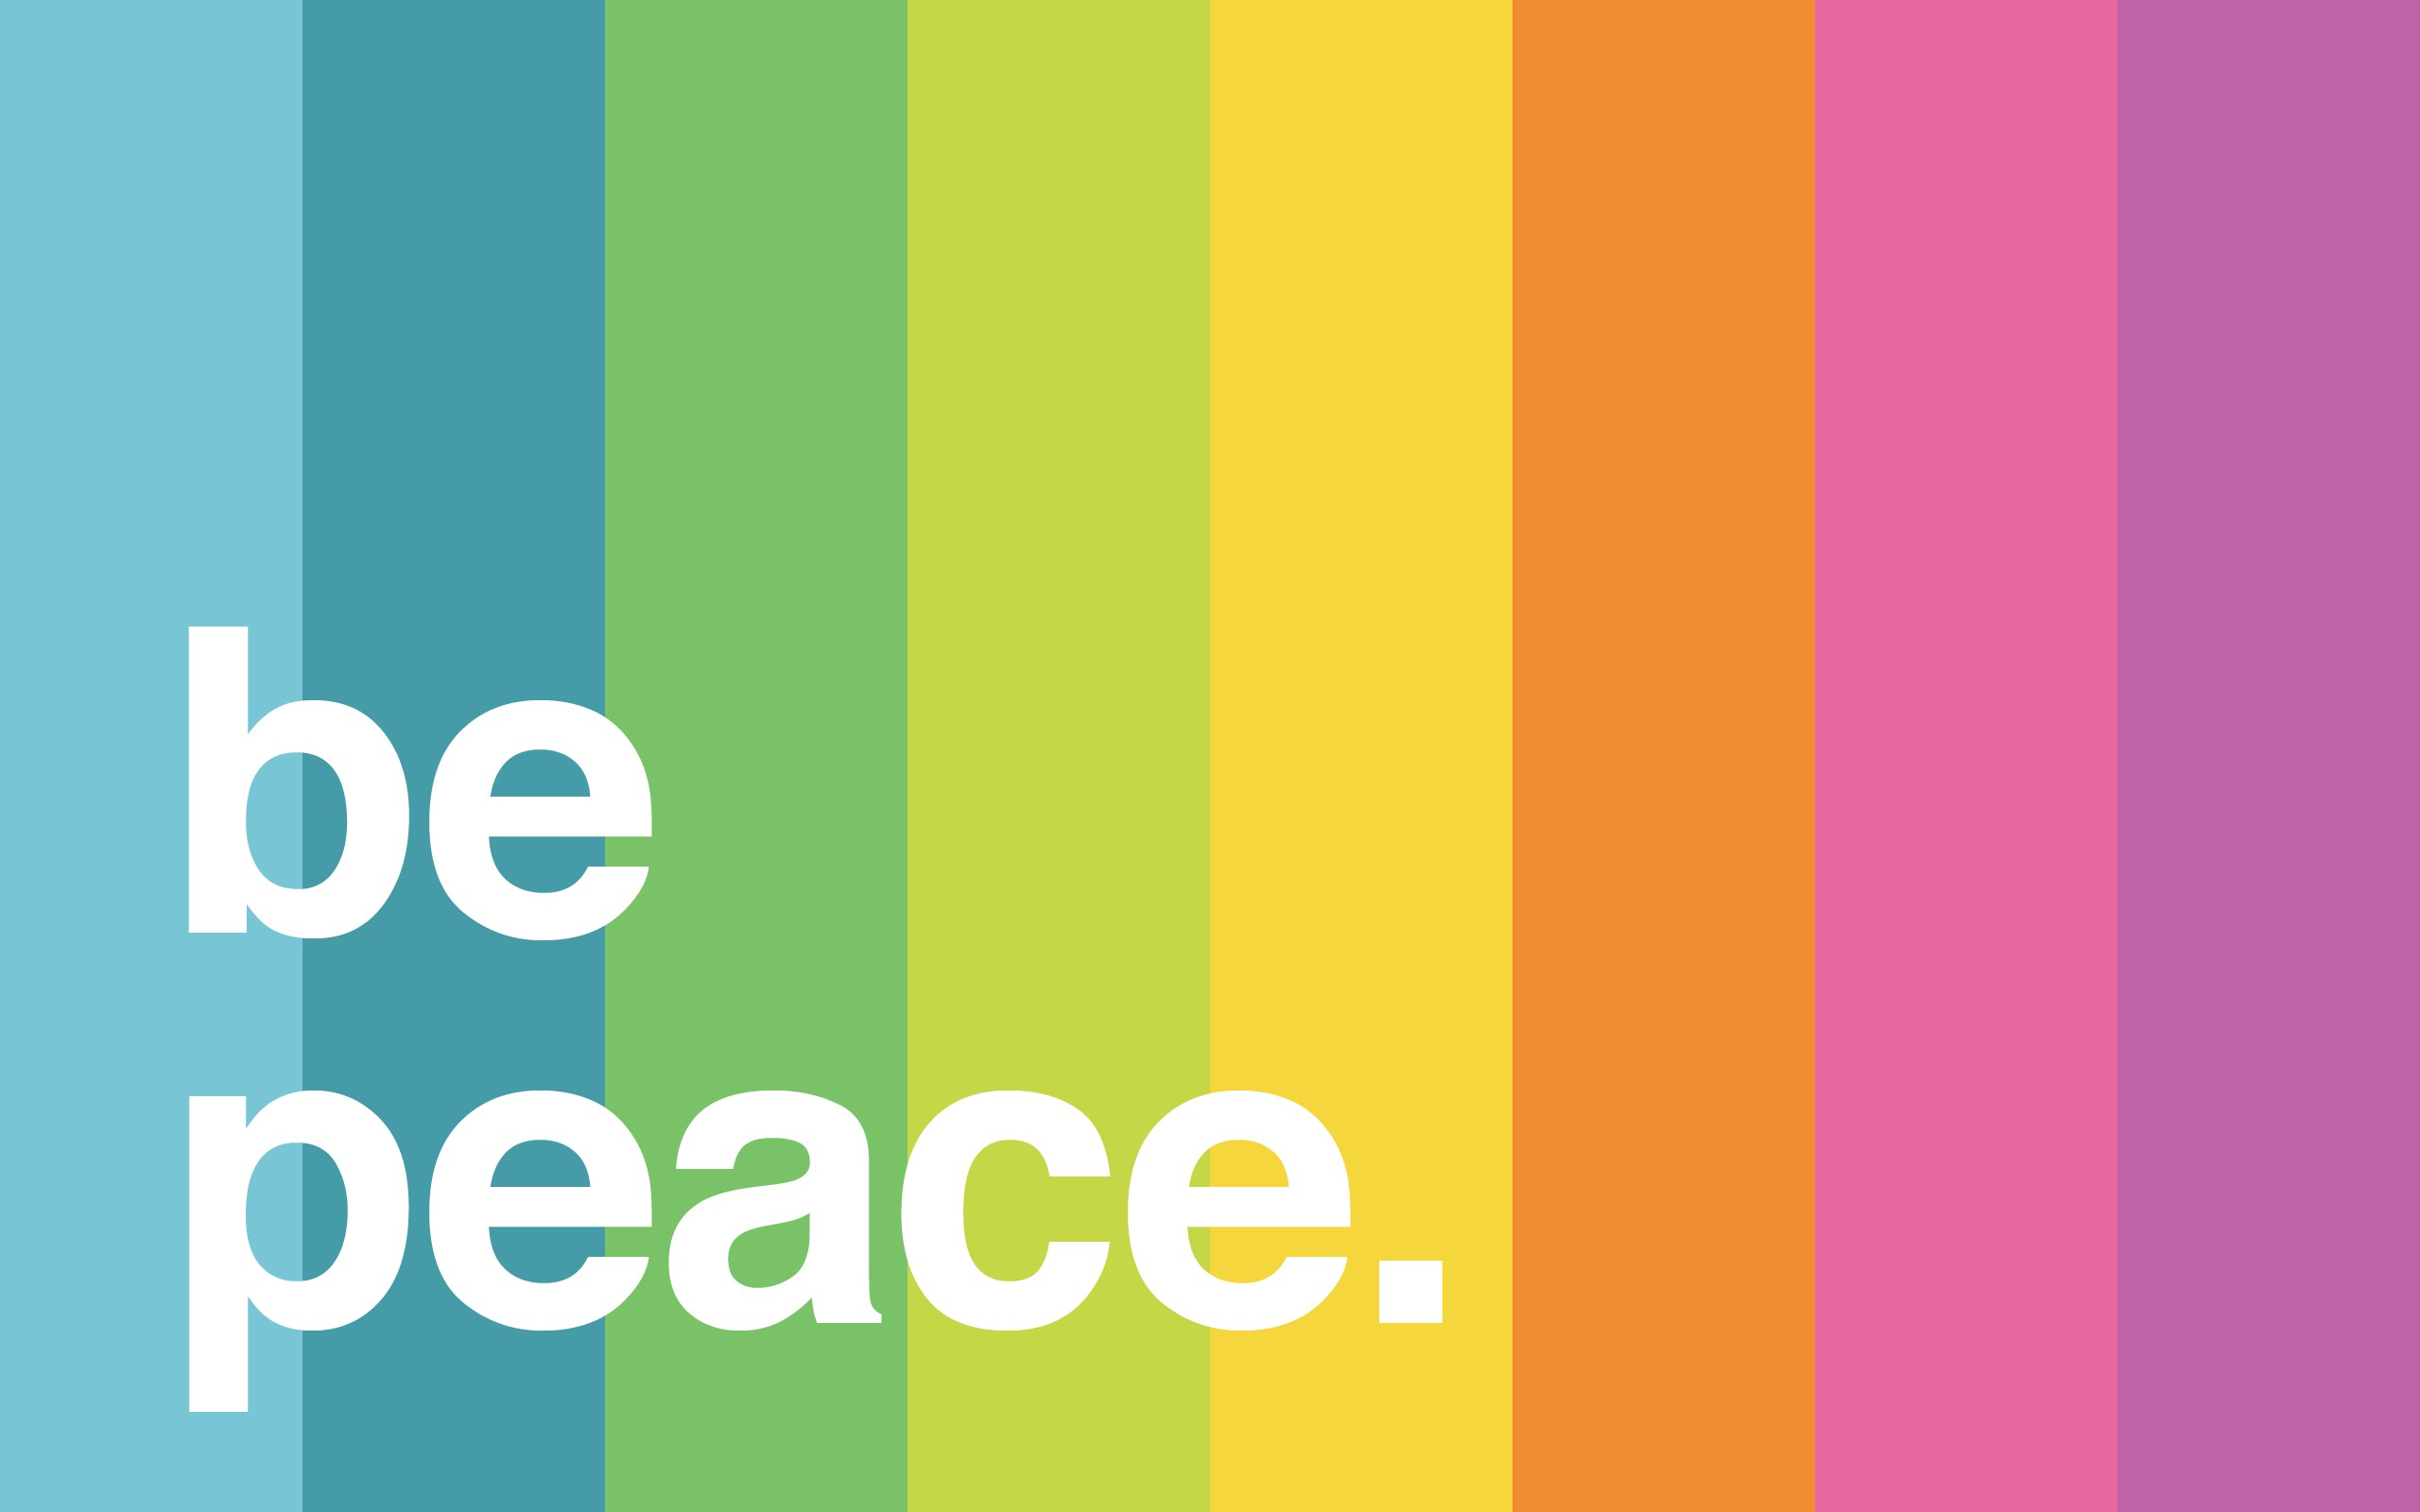 peace wallpaper ·① download free amazing full hd backgrounds for